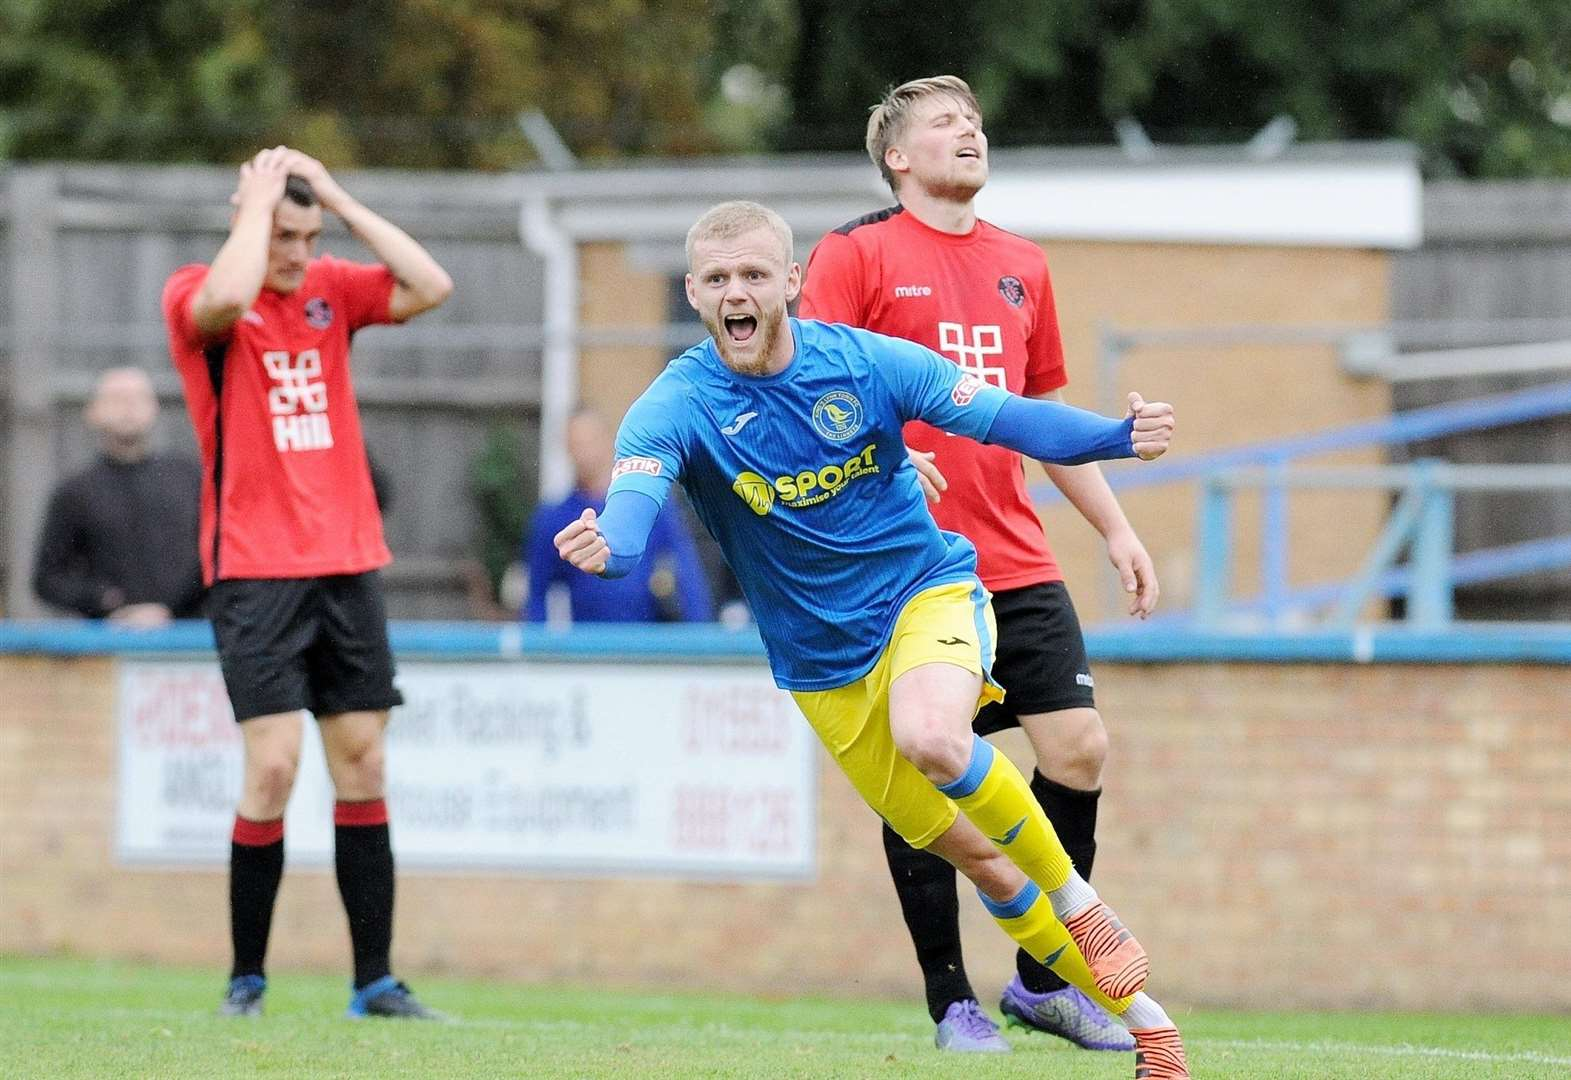 King's Lynn Town defender signs for League One giants